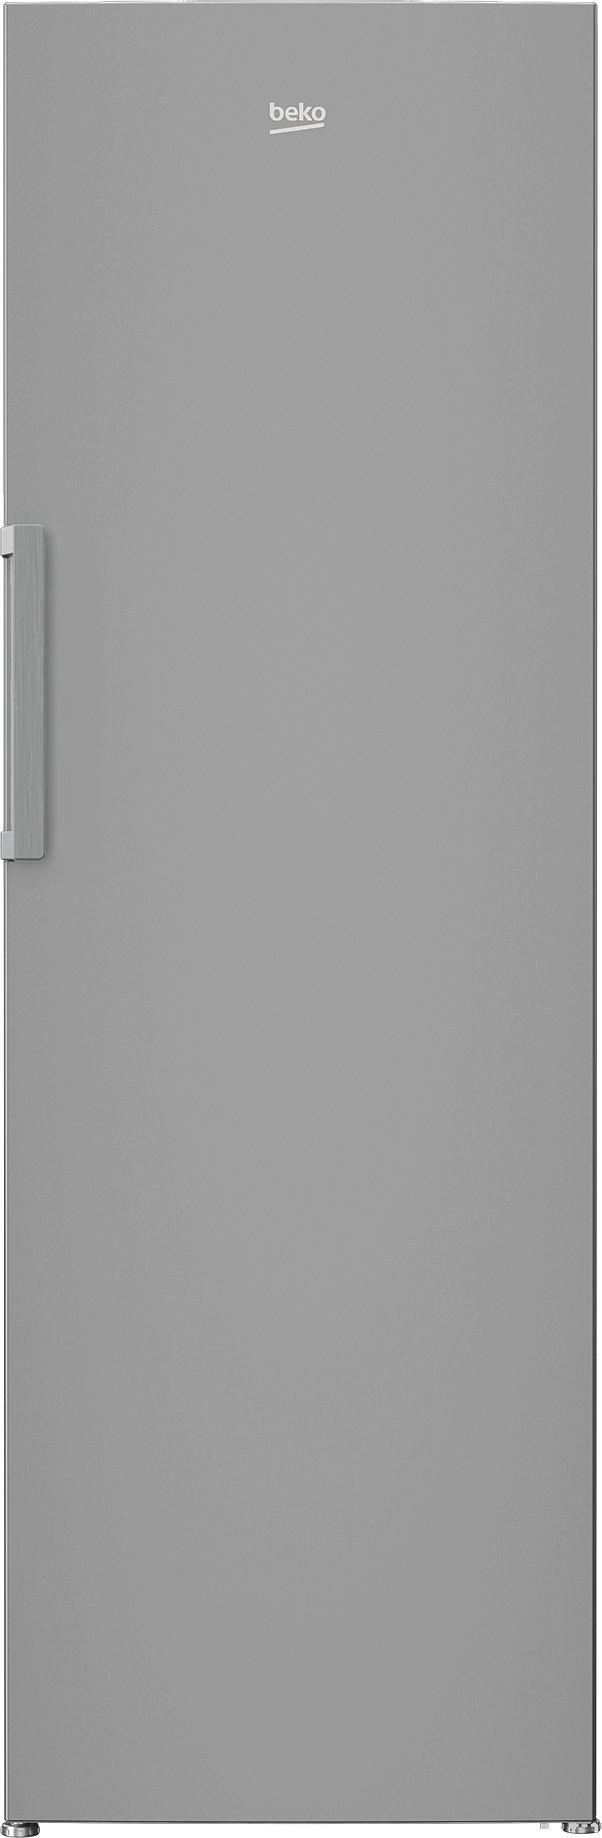 Beko LRSP3685 Freestanding tall larder fridge in stainless steel with a reversible door.